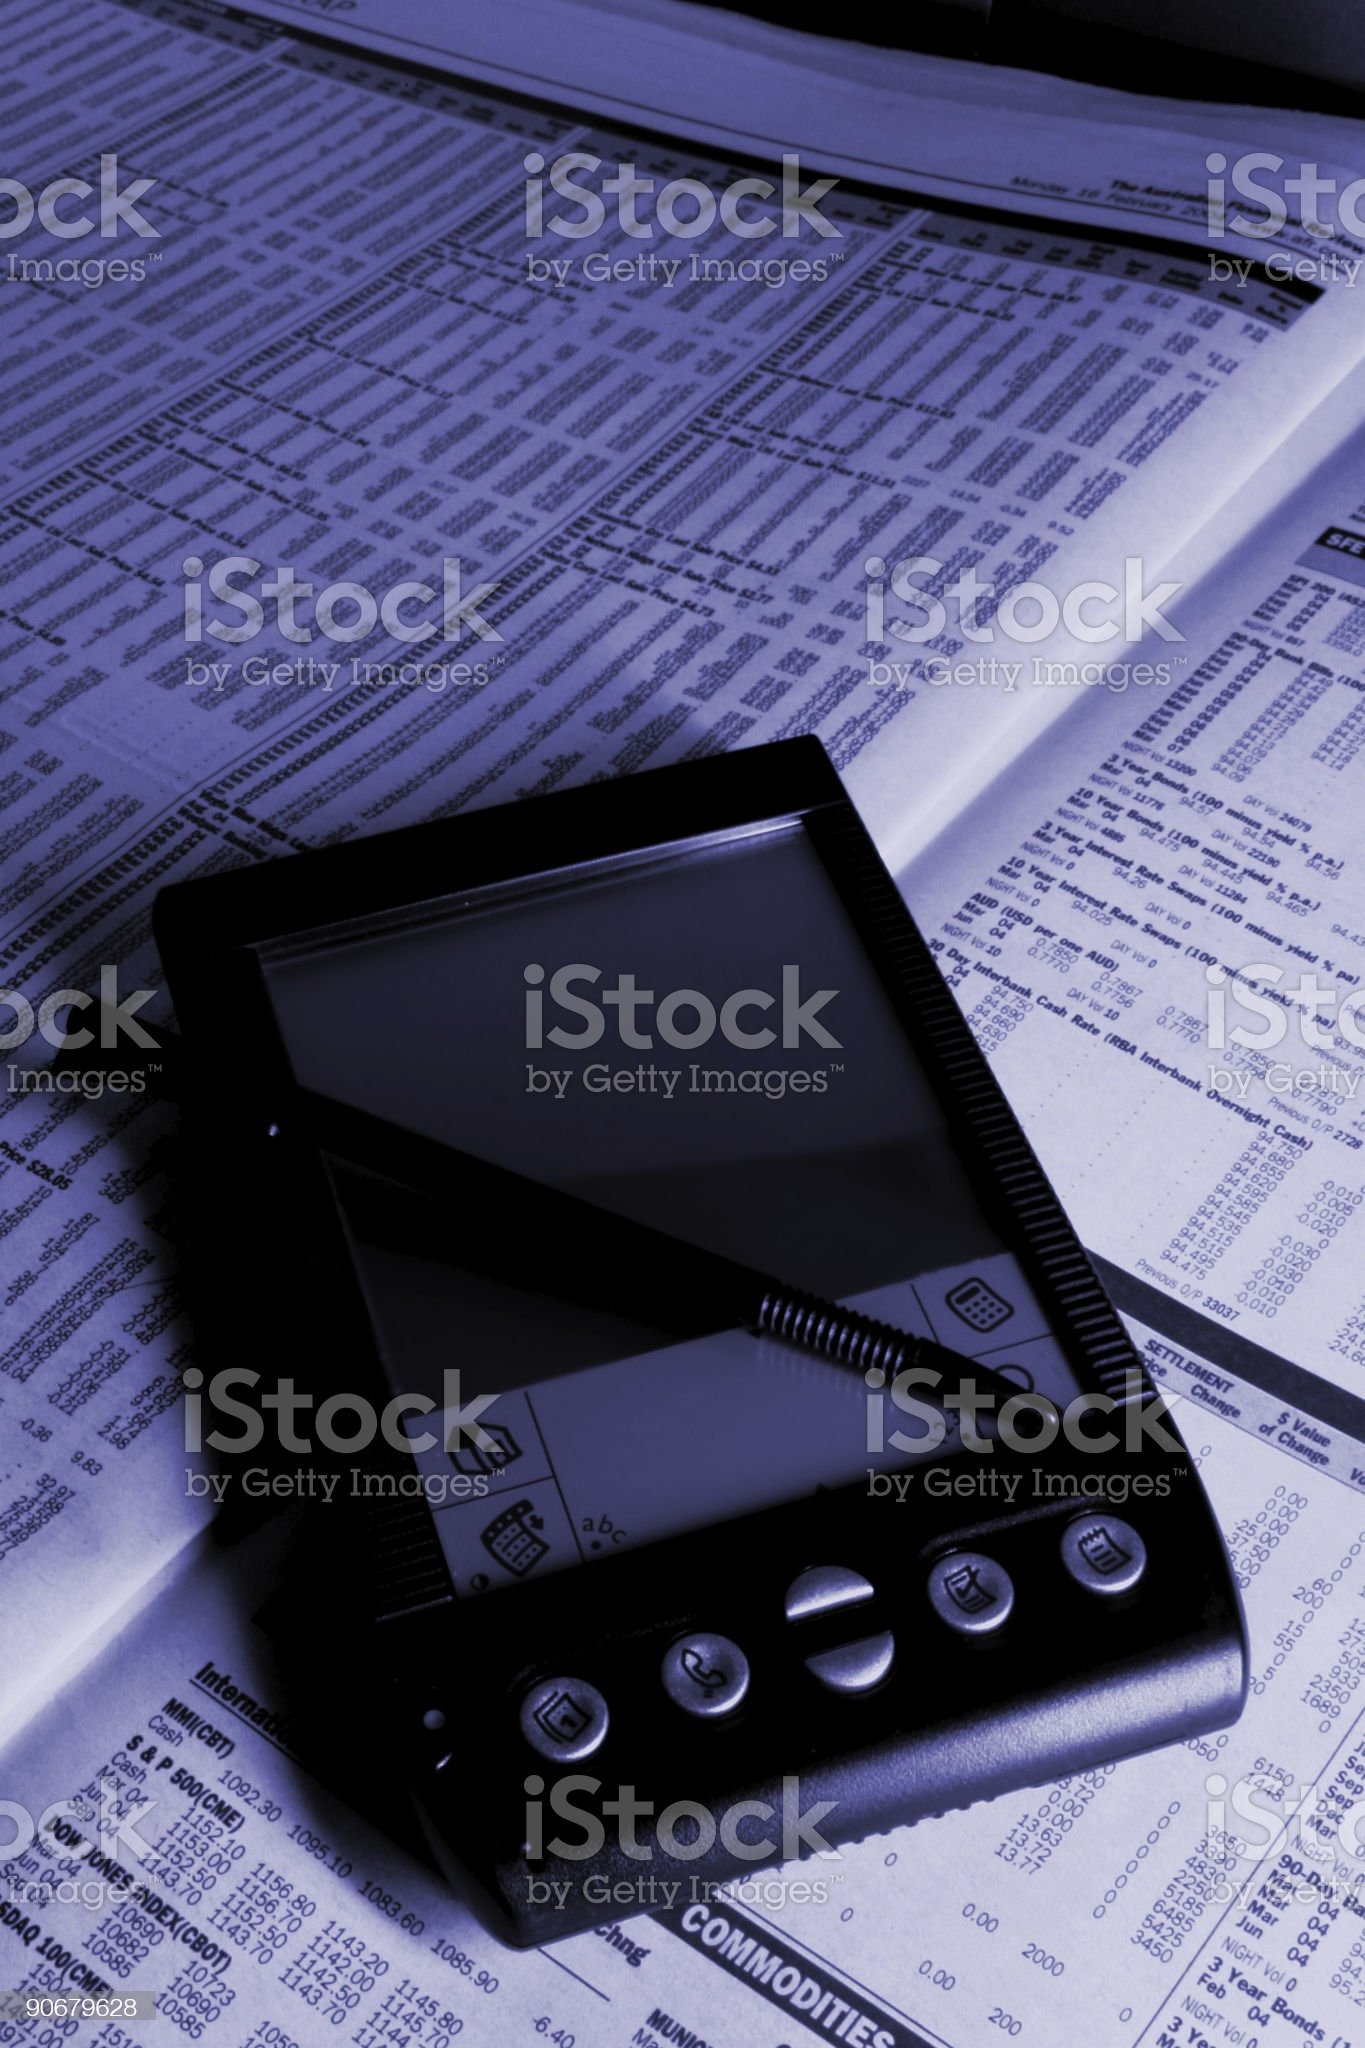 Bussiness Accessories royalty-free stock photo